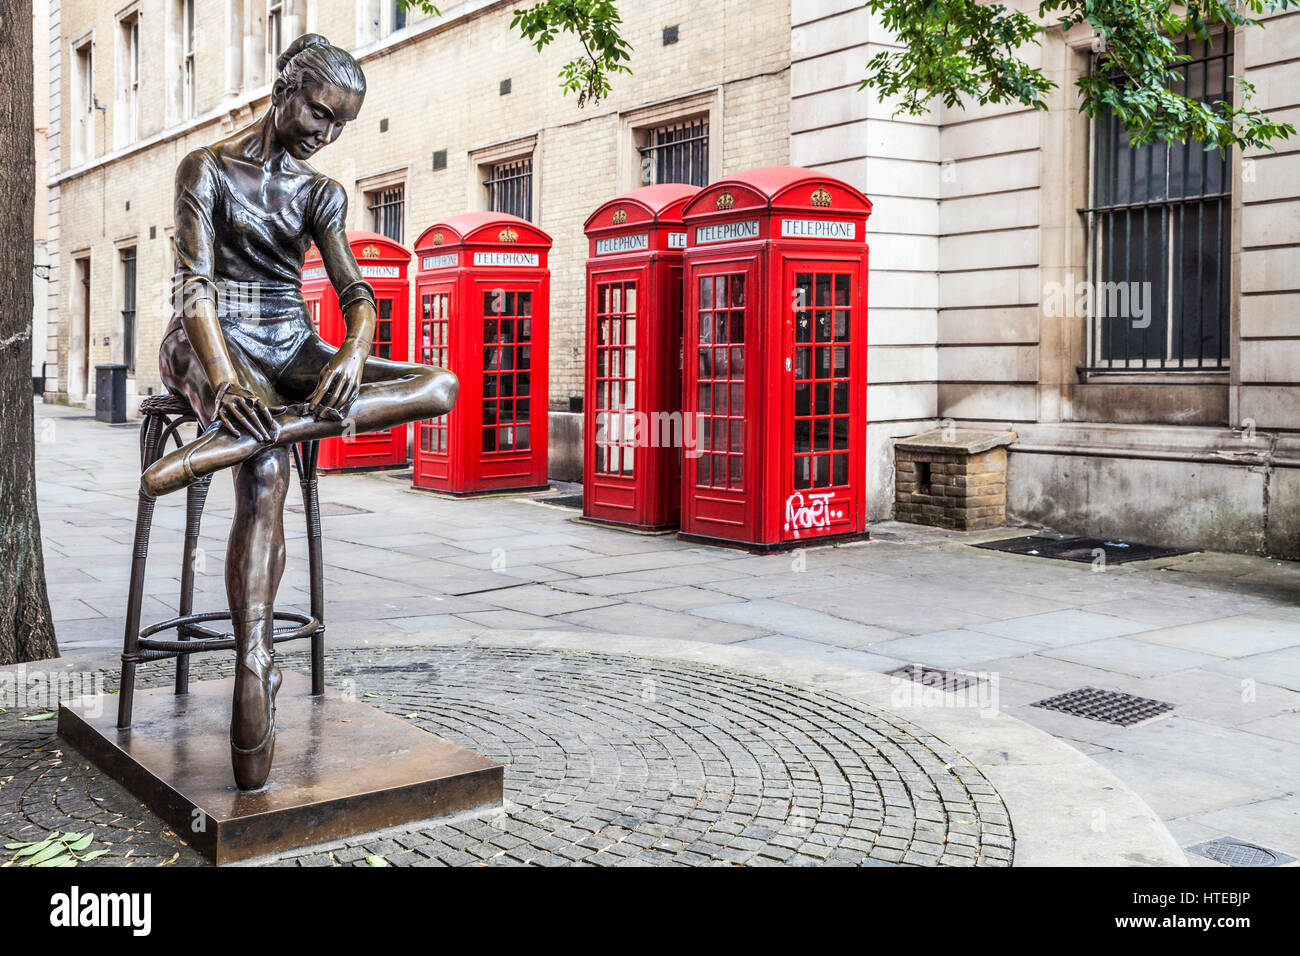 Statue of a young dancer by Enzo Plazzotta with a row of red telephone boxes in London. - Stock Image